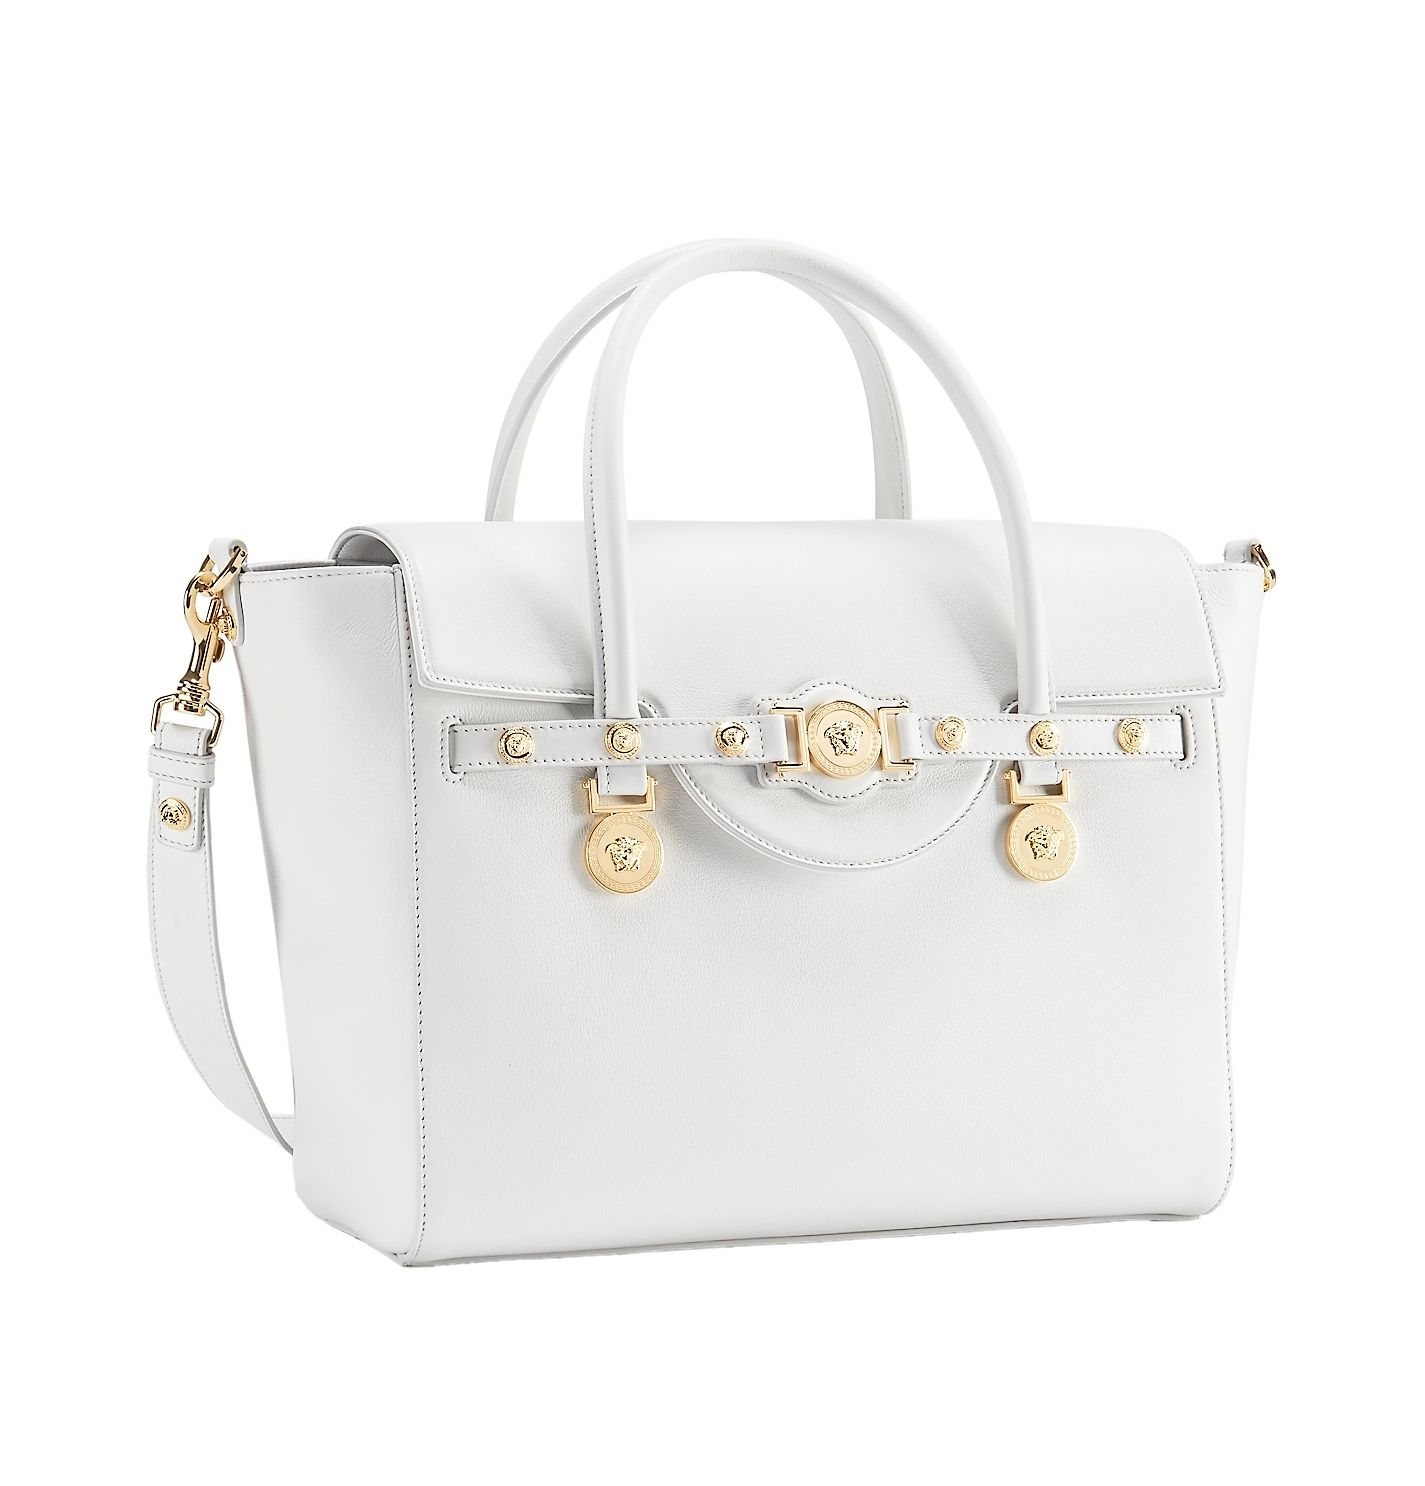 A Large White Versace Signature Bag Versacesignaturebag